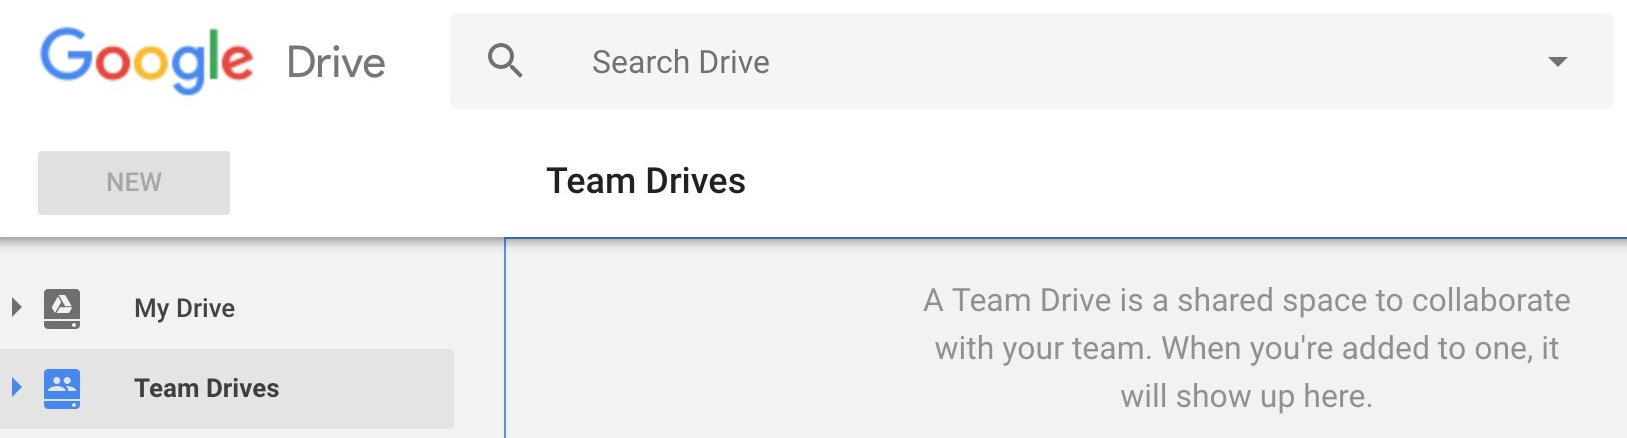 My Drive and Team Drive in Google Drive